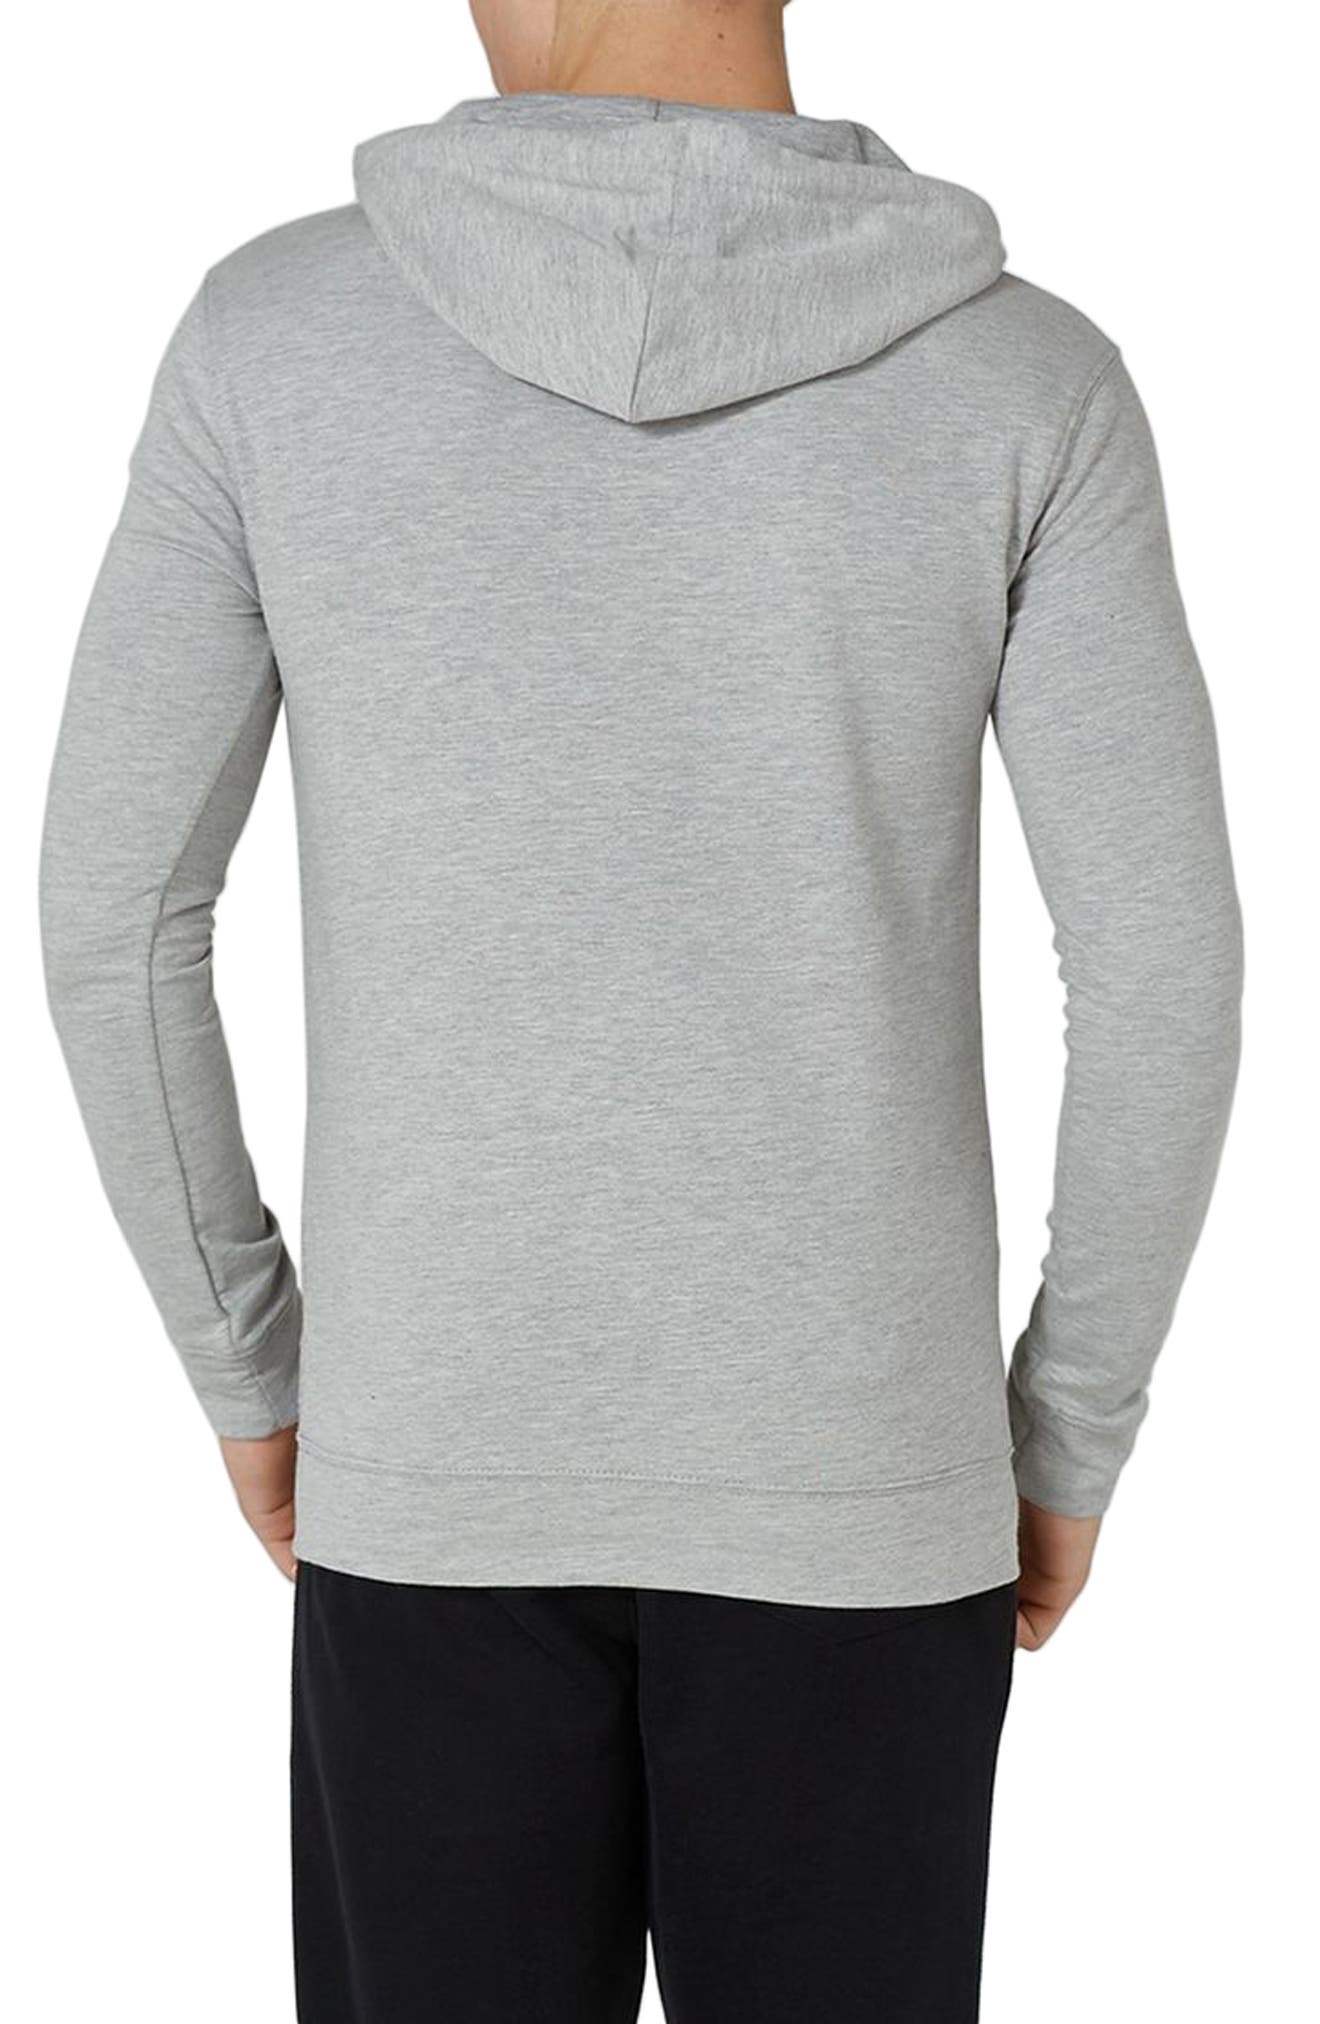 Ultra Muscle Fit Hoodie,                             Alternate thumbnail 5, color,